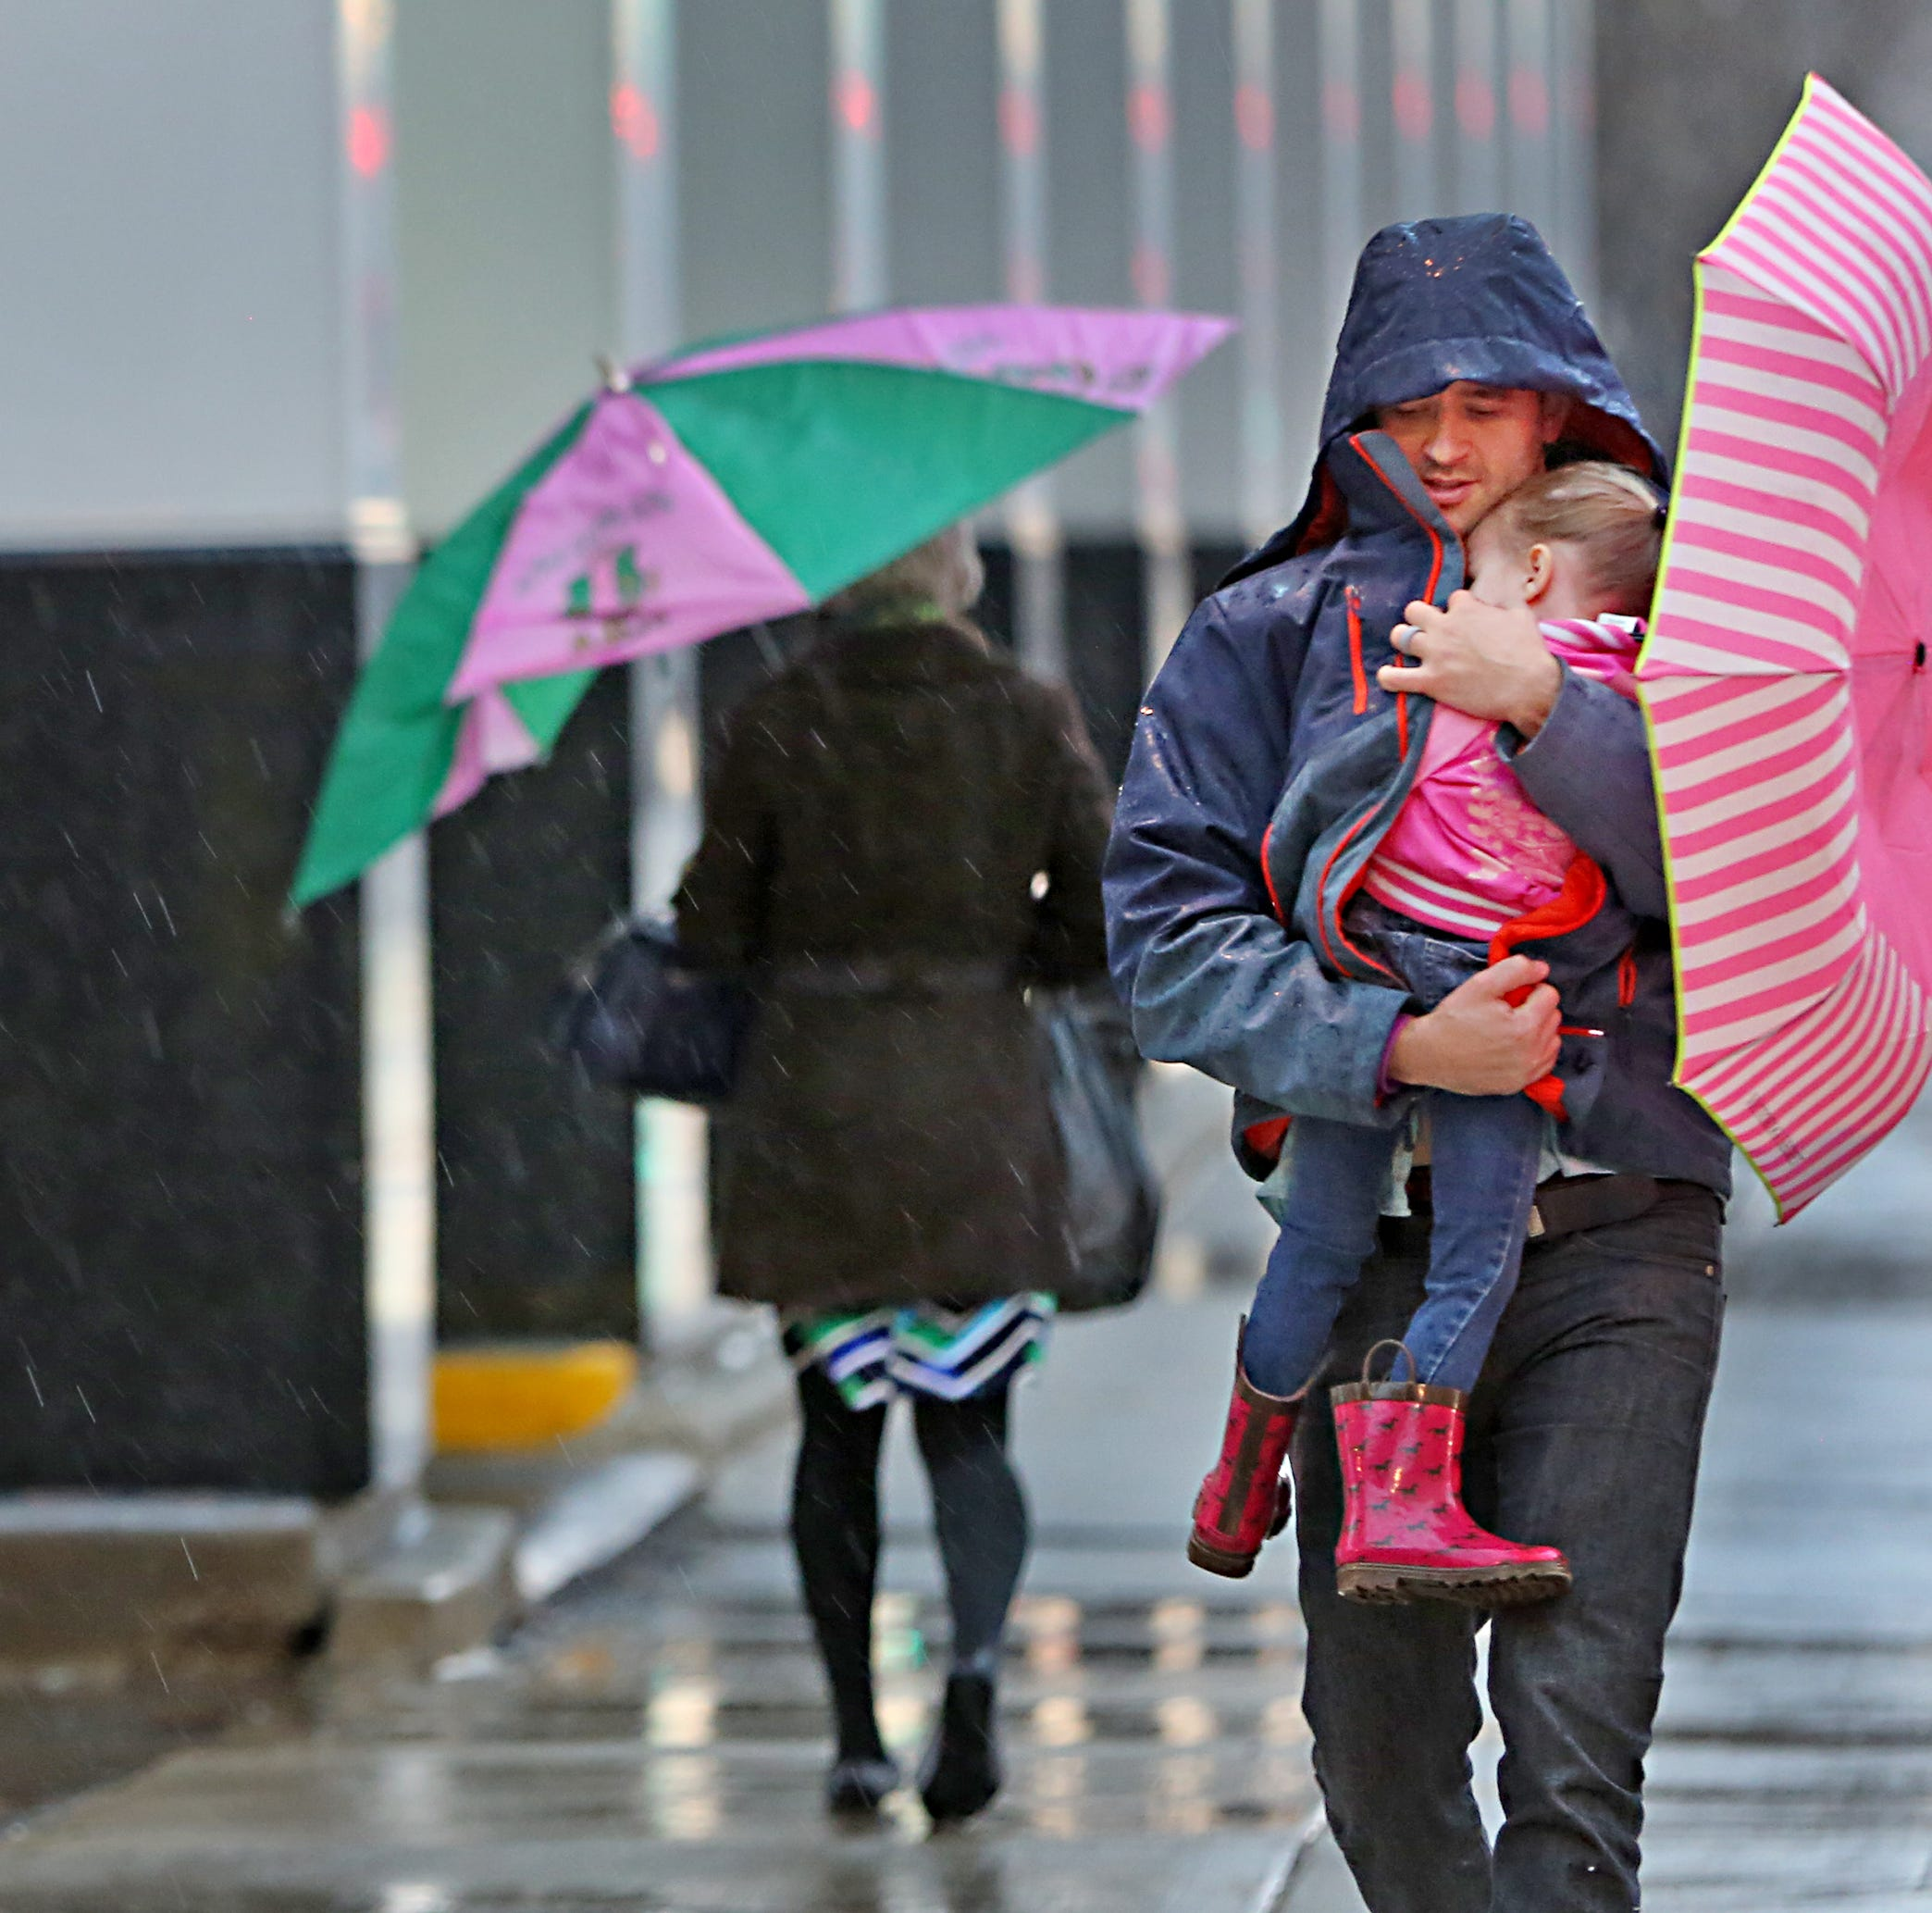 Indianapolis weather: No blizzard, but wild weather is still headed our way